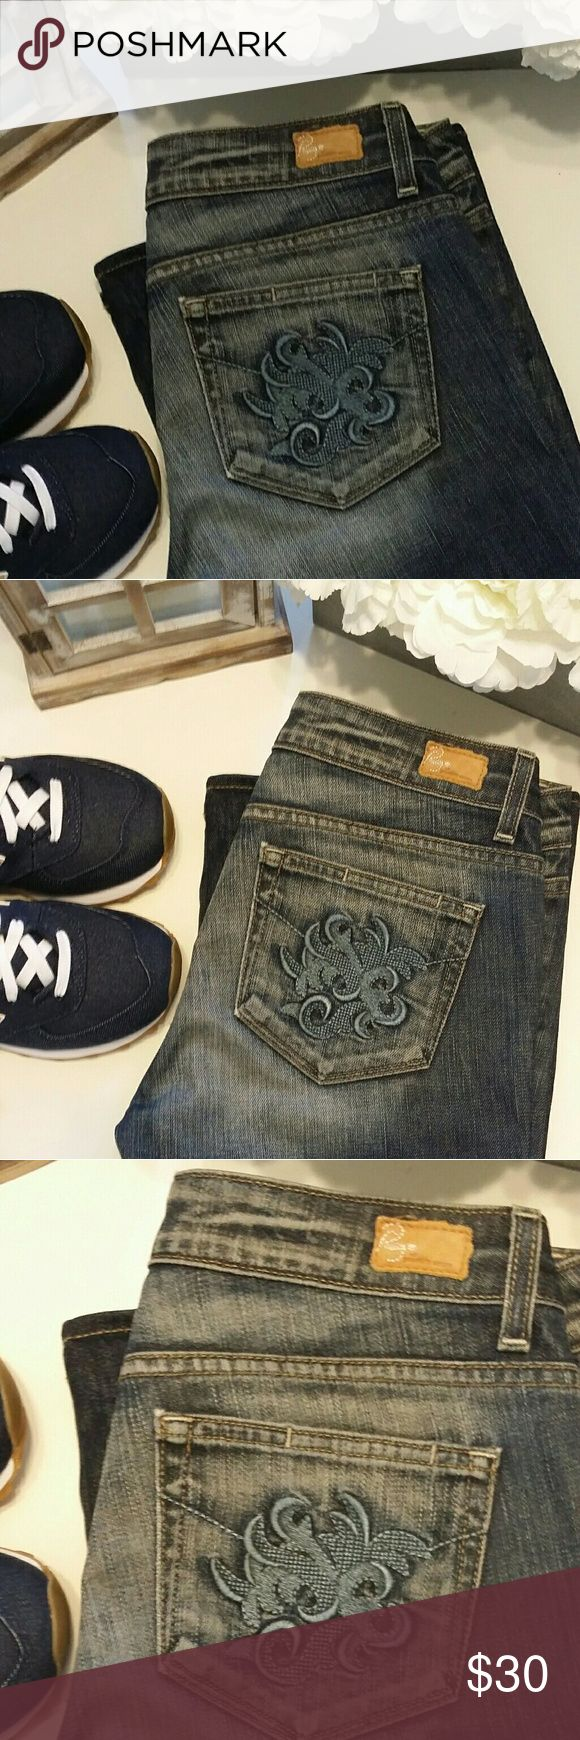 Paige Blue Jeans Paige Blue Jeans with design pocket. Size 29. Rise is approx 8 inches, Length (from crotch to bottom) approx 33 1/2 inches band is approx 15 3/4 inches Paige Jeans Jeans Boot Cut